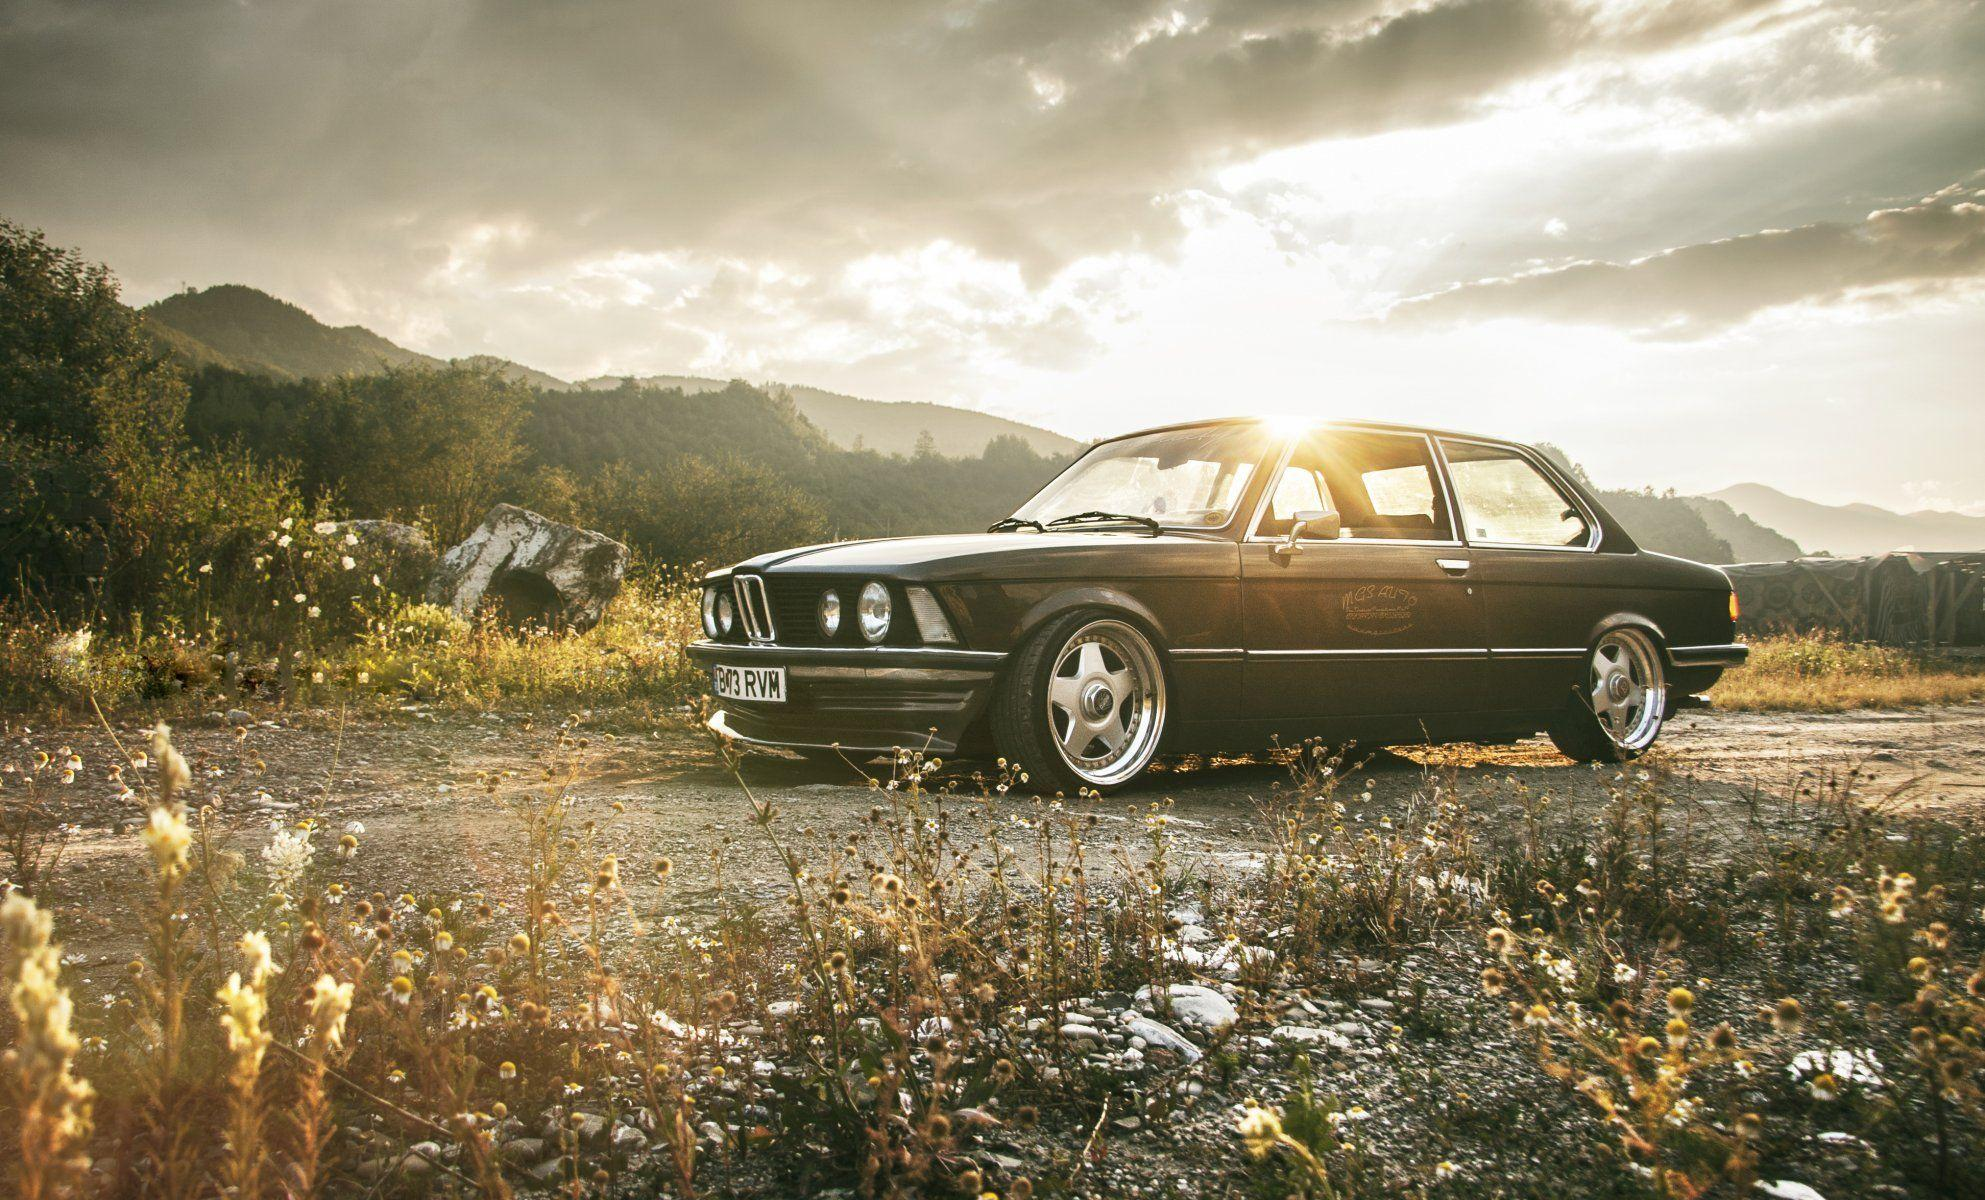 bmw e21 stance bmw classic retro tuning drives dawn HD wallpapers